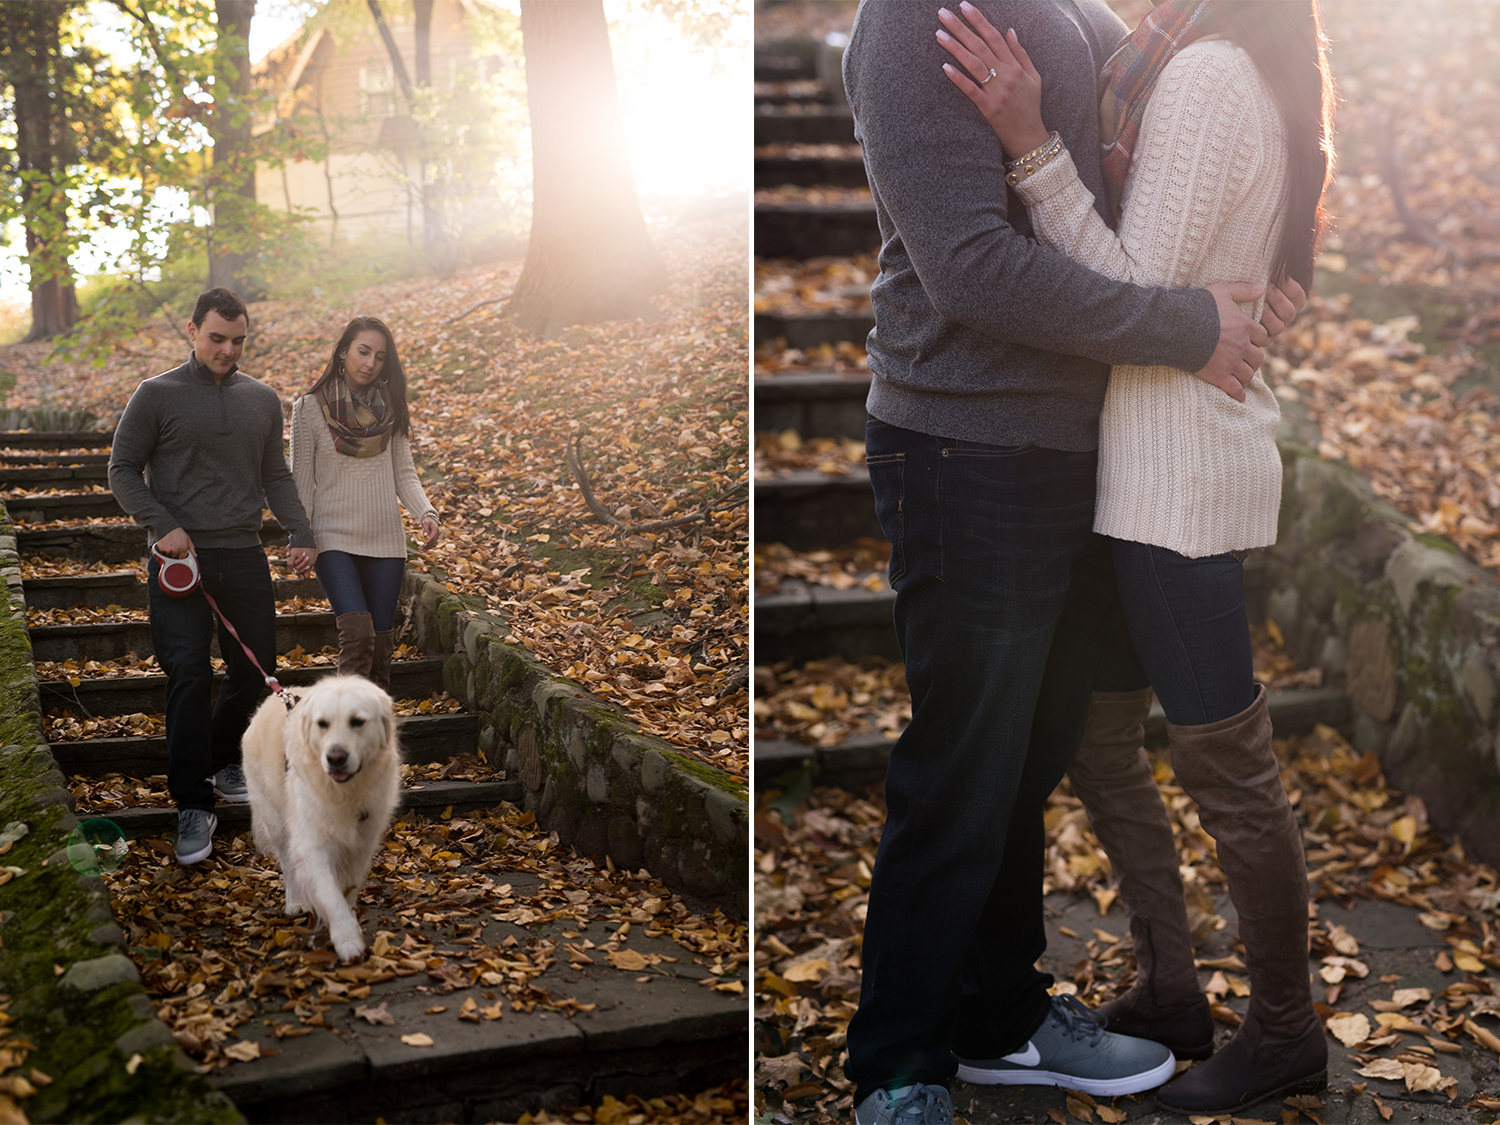 Melissa+Jeff- Local Park Engagement Session with Dog- Booth Park Nutley- New Jersey-Olivia Christina Photo-7.jpg